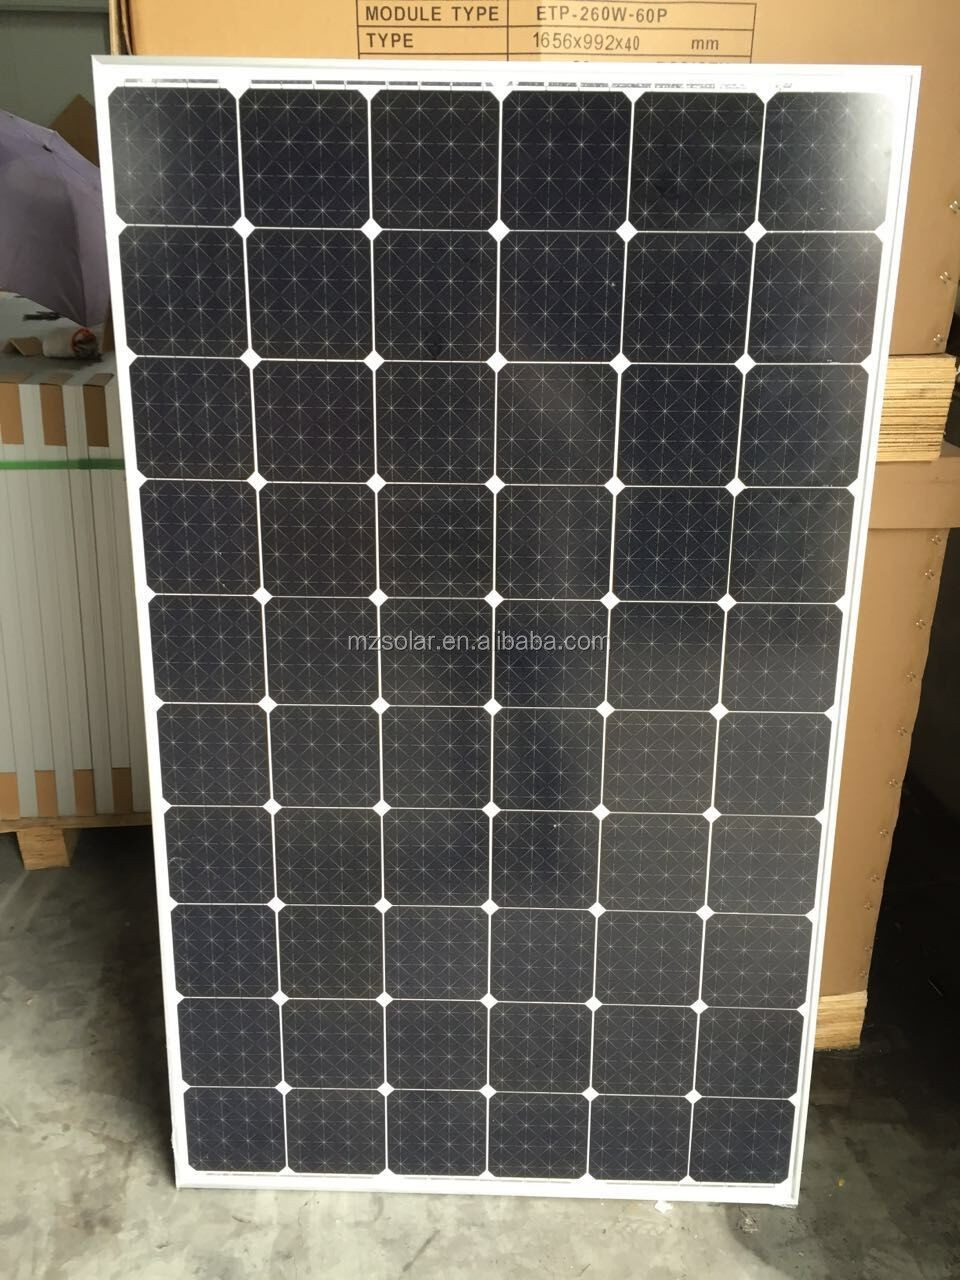 Latest technology solar panel 500w monocrystalline for home